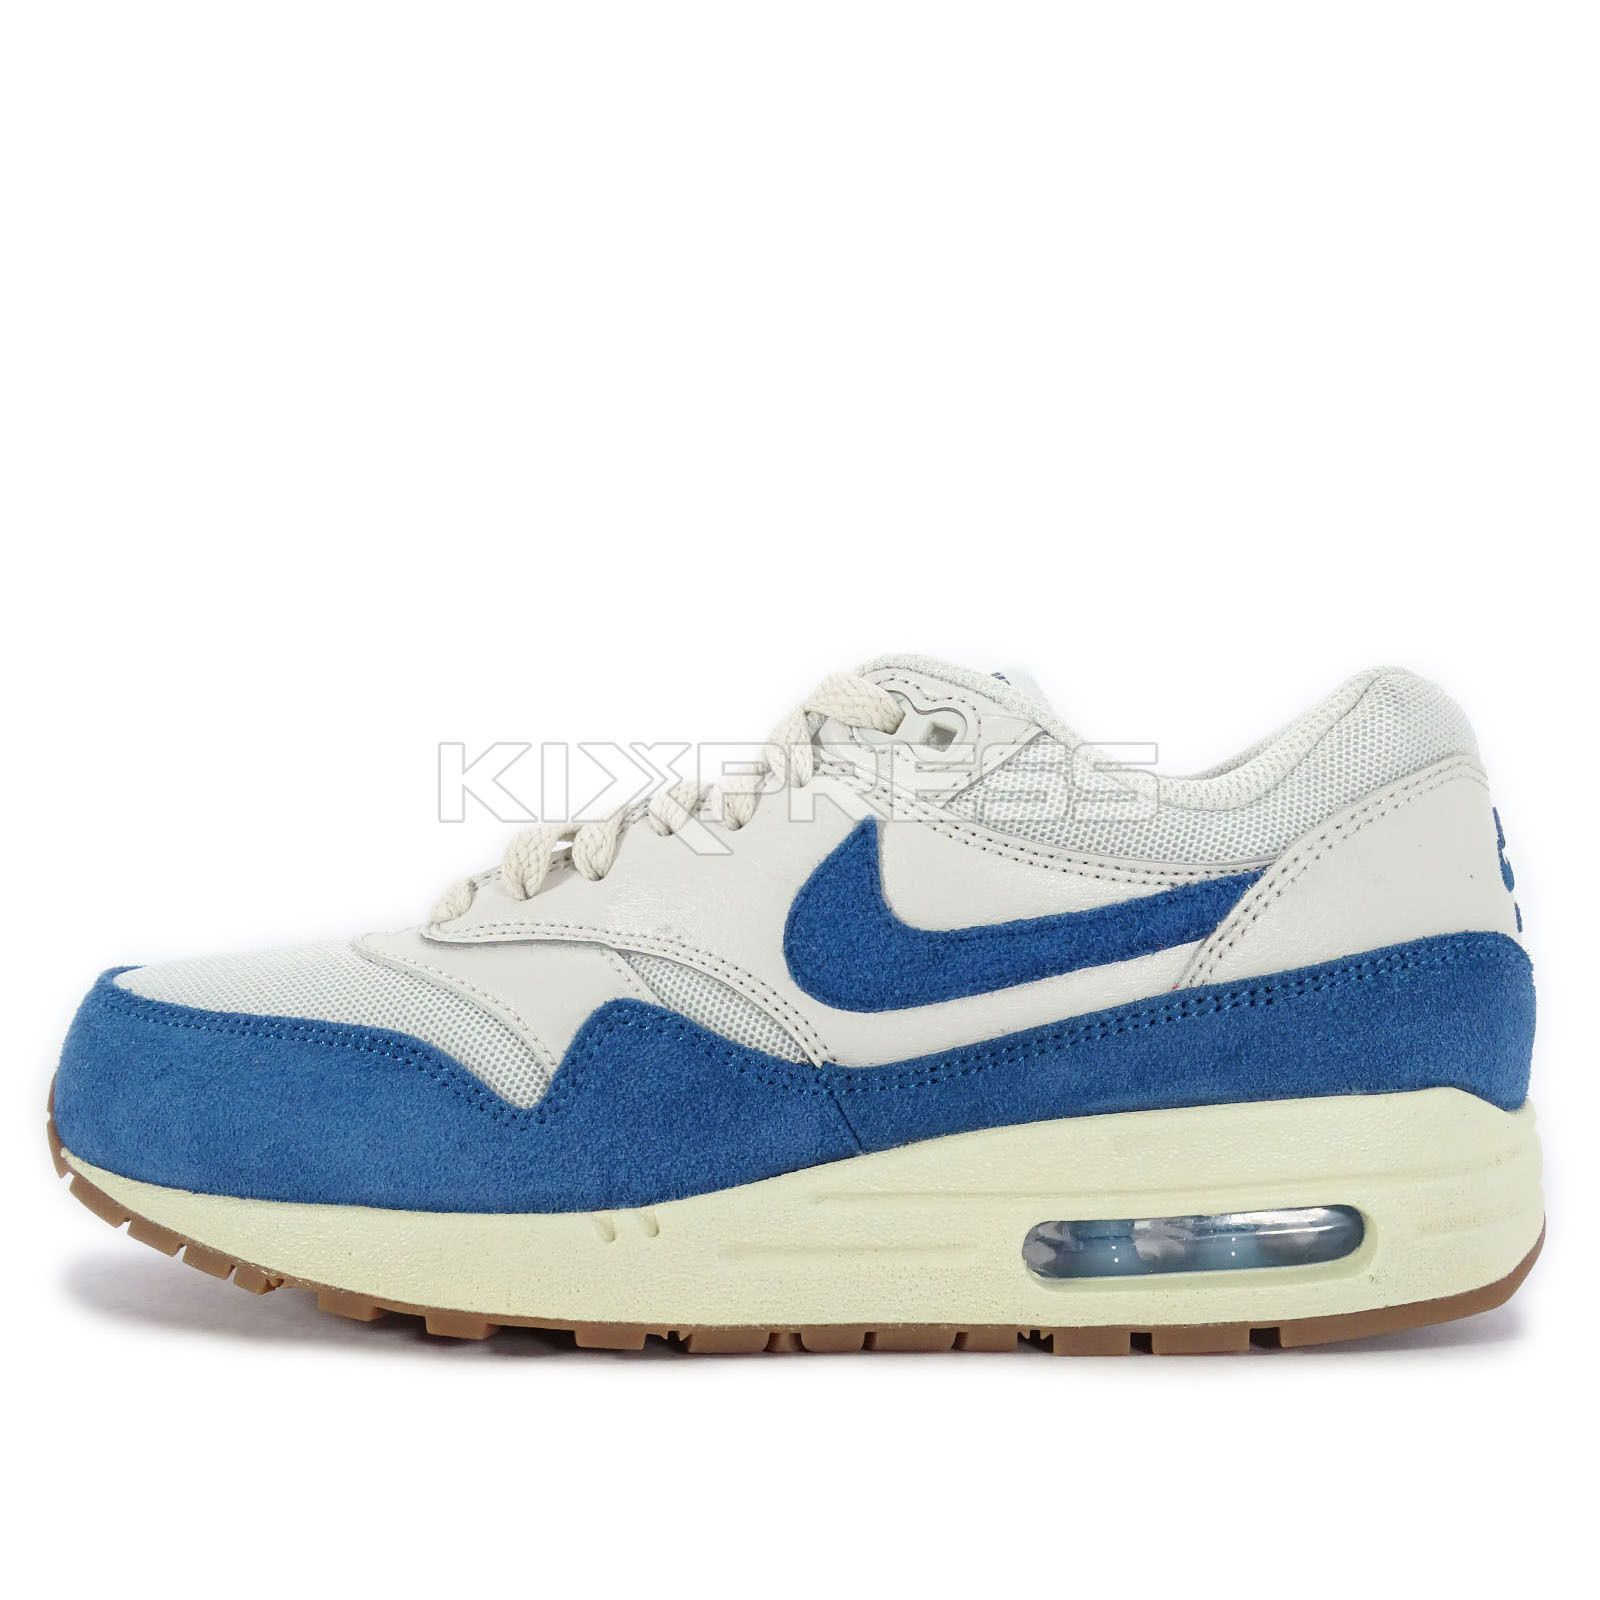 Details about NIKE WOMENS AIR MAX 1 ESSENTIAL SNEAKERS LIGHT